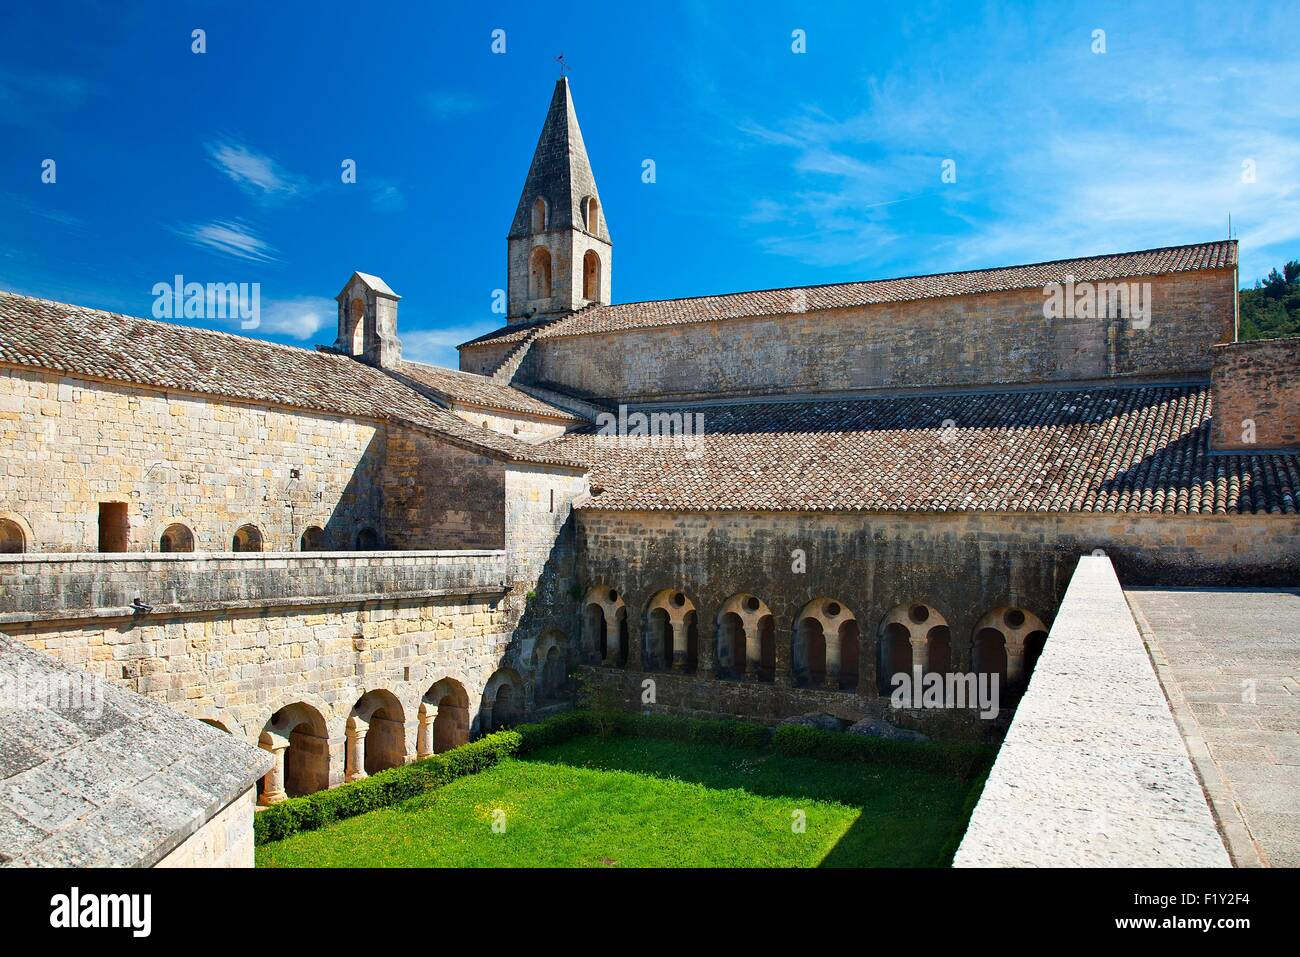 La France, Var, l'abbaye cistercienne du Thoronet Photo Stock